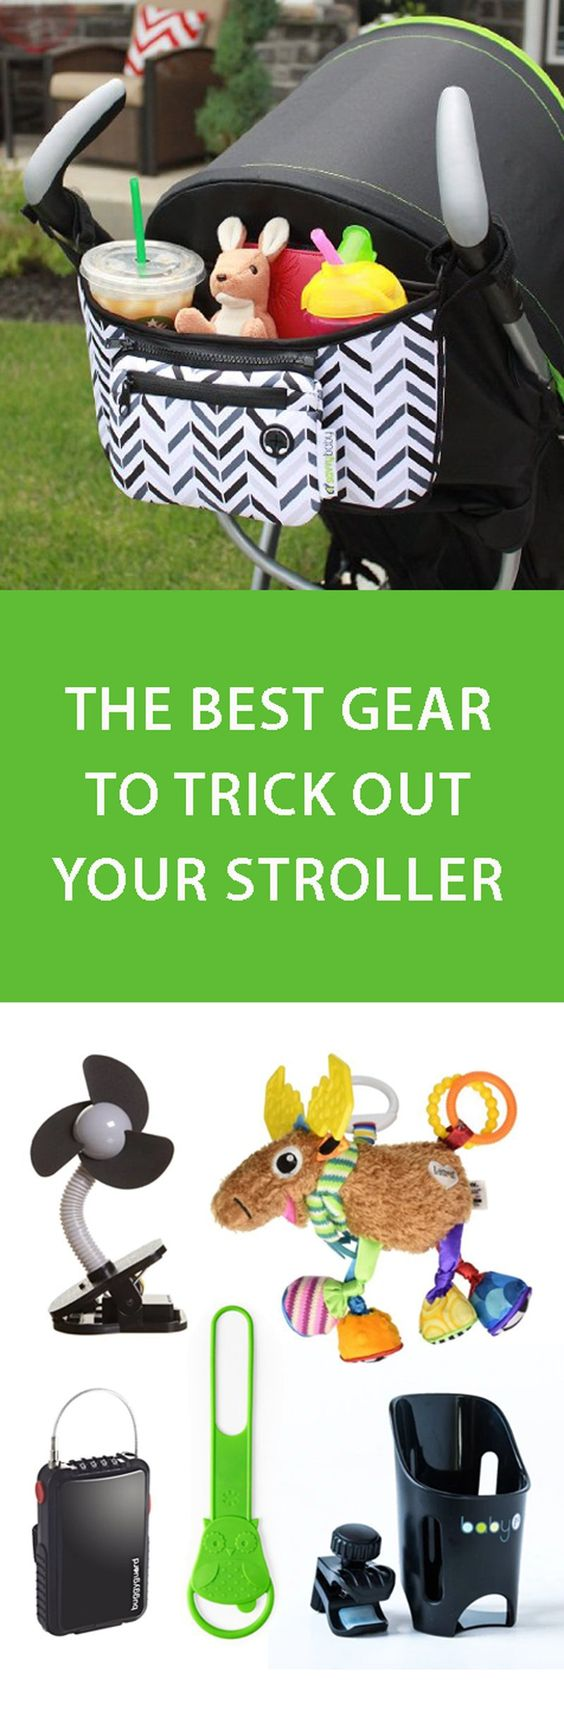 Check out our list of all the best stroller gear, including our favorite cup holders, stroller locks, toys, and sun shields!